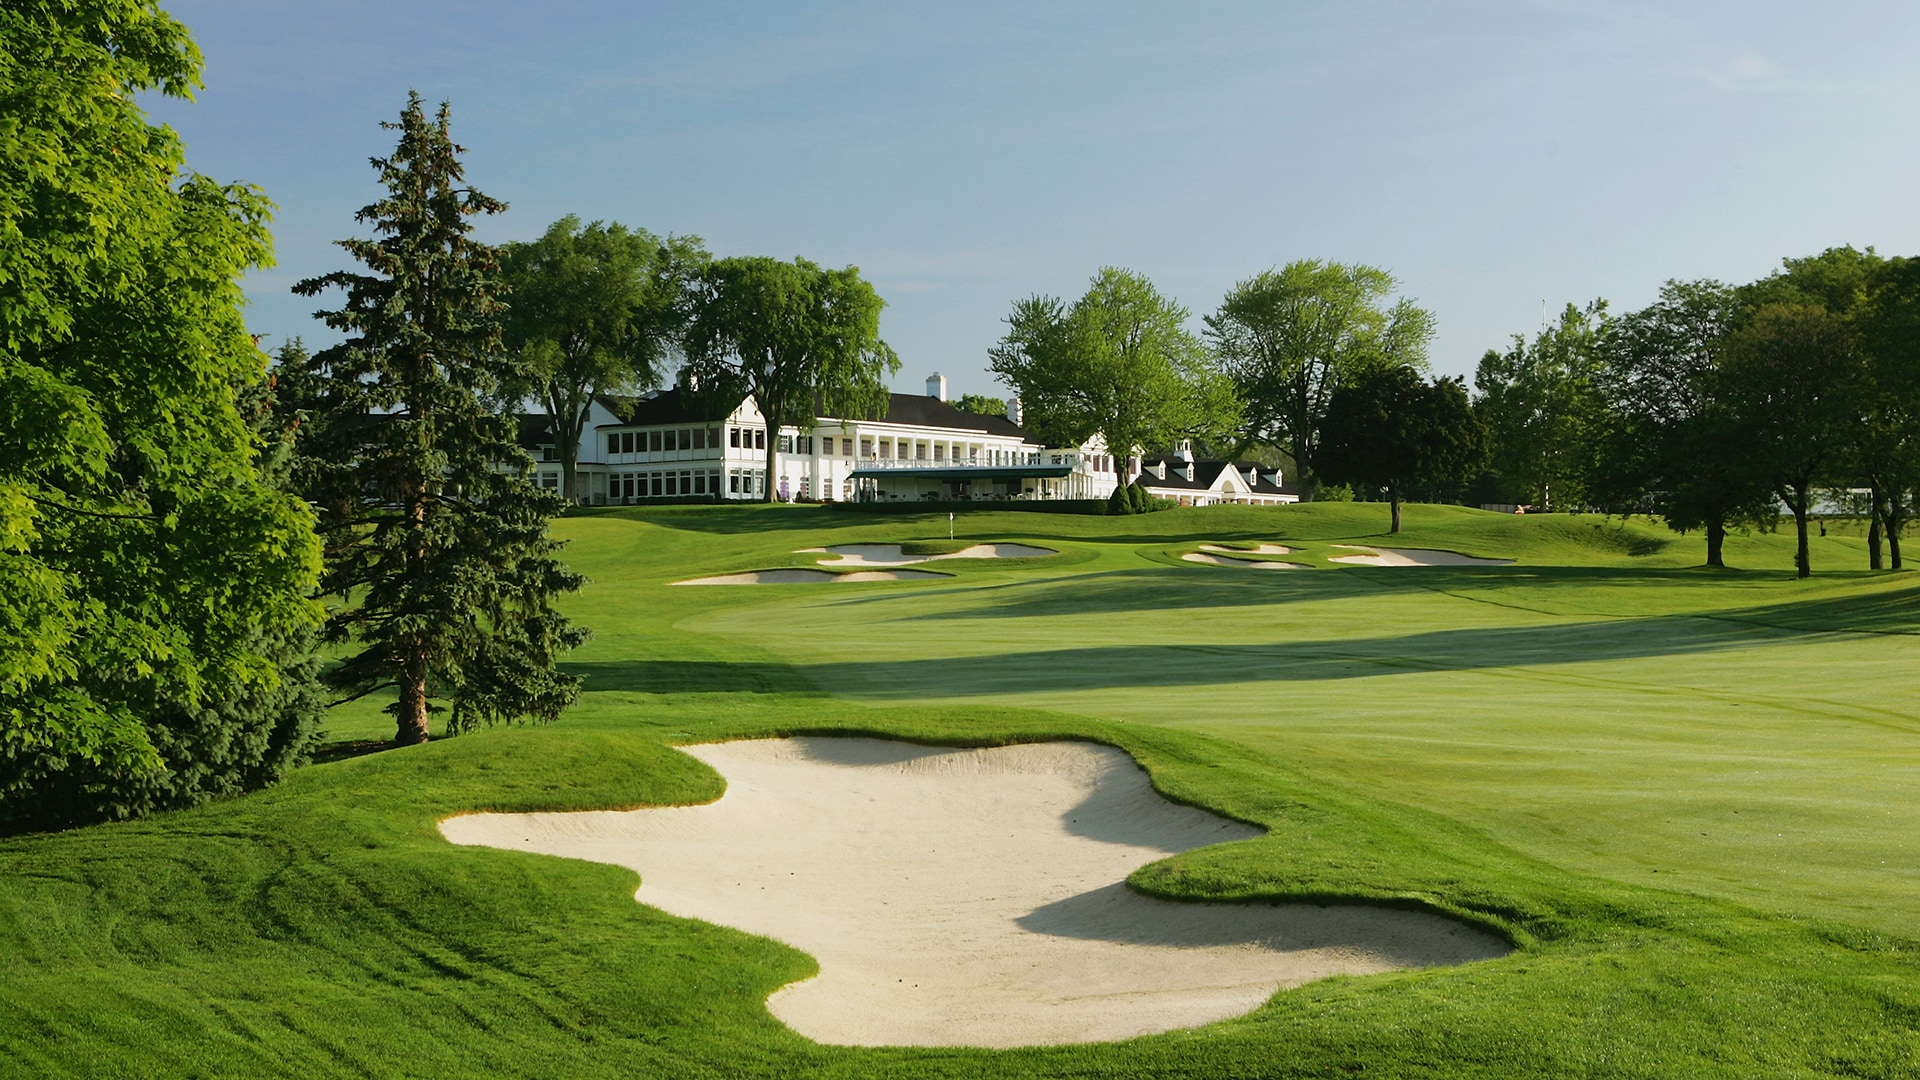 4. Oakland Hills Country Club (South)